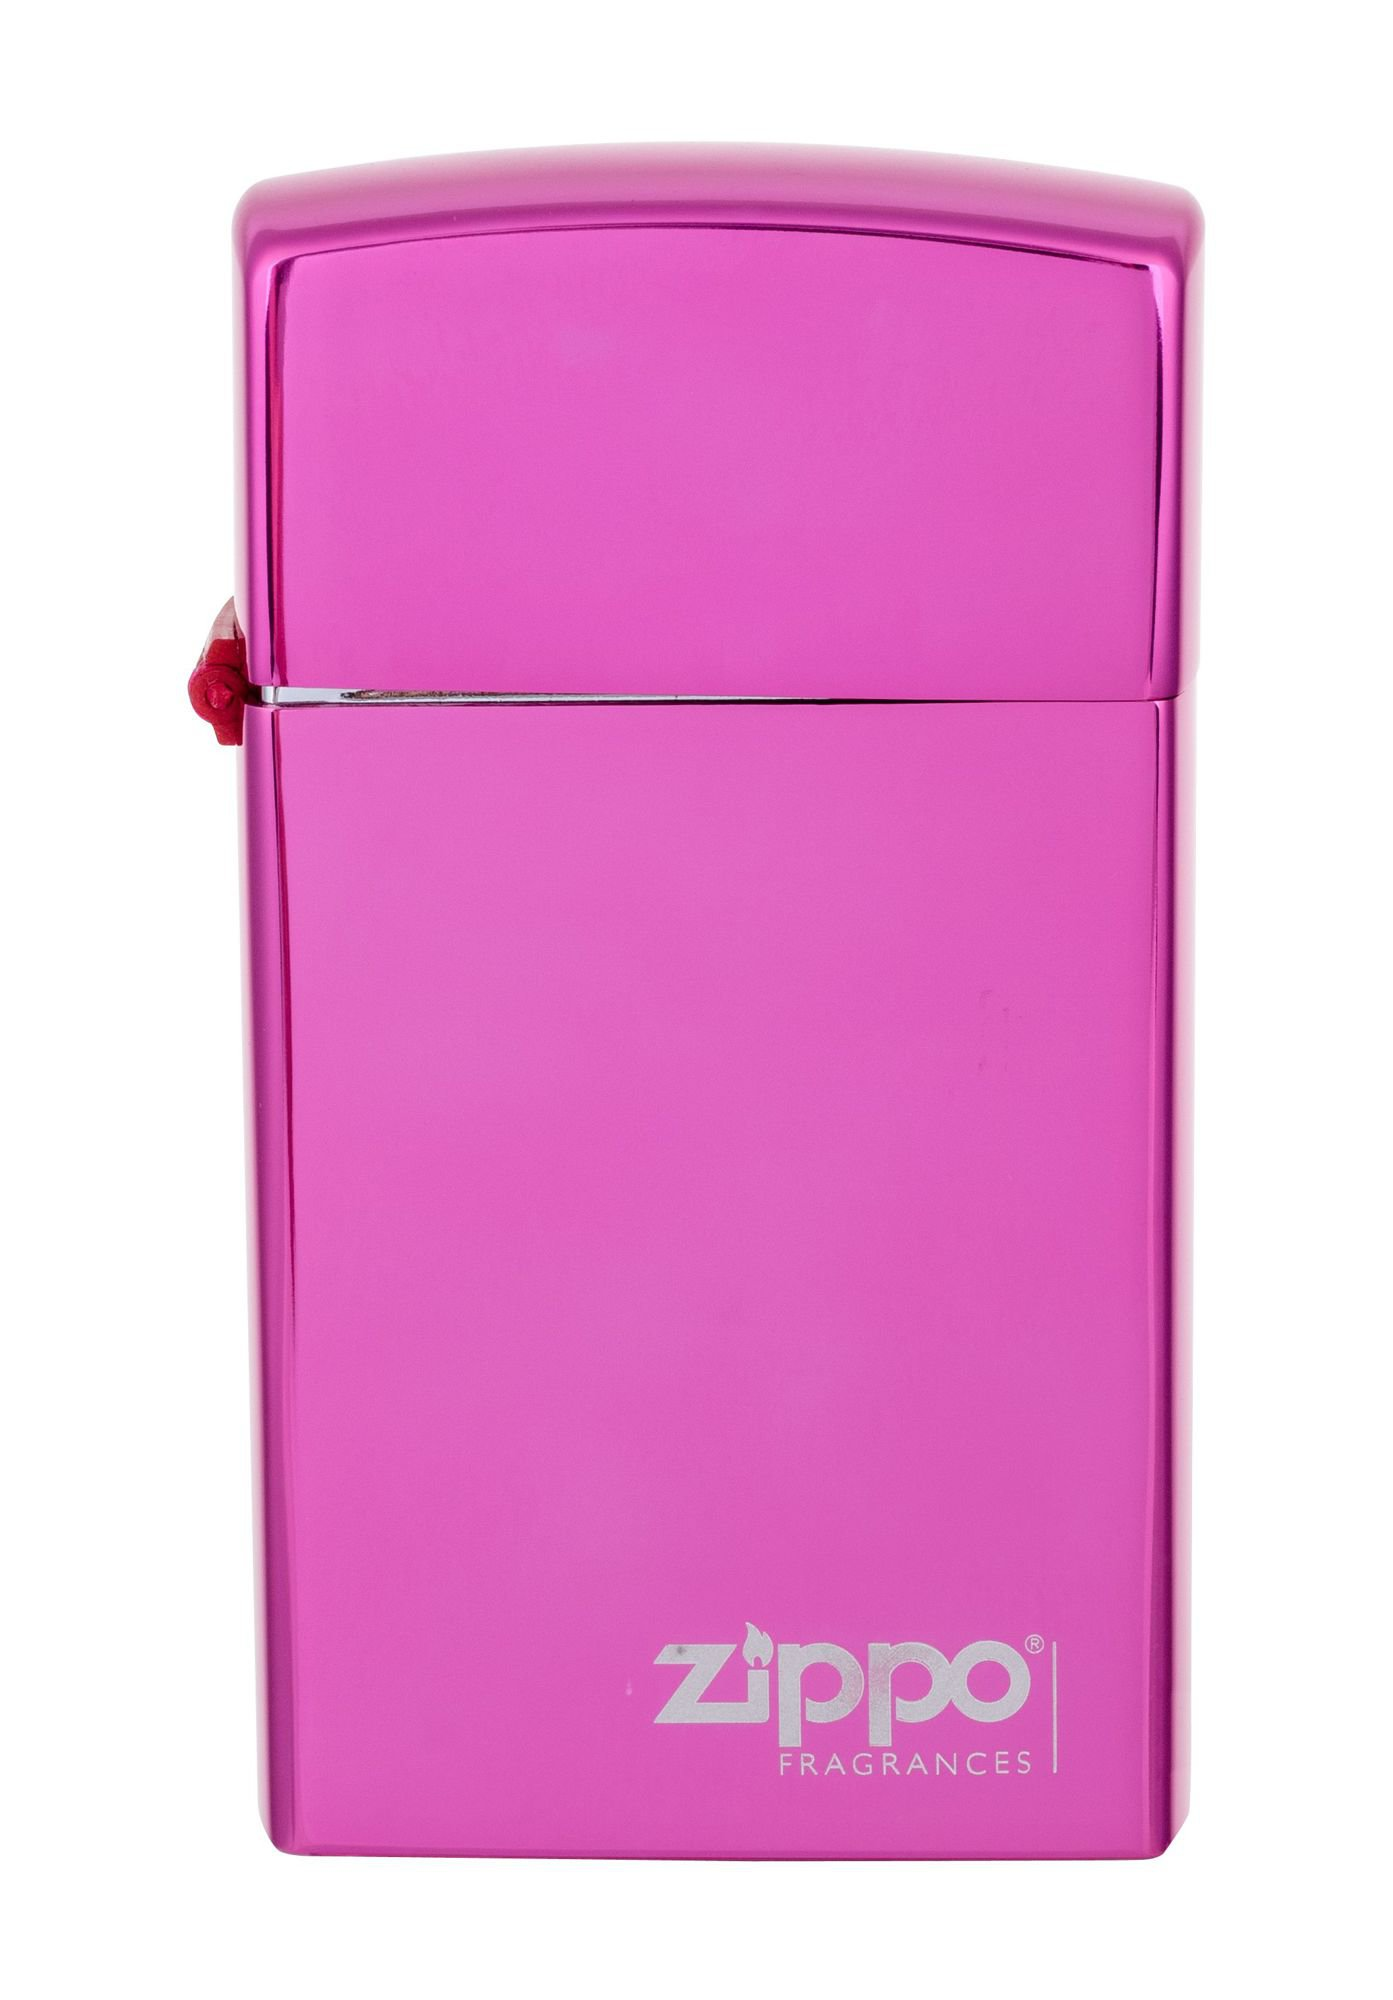 Zippo Fragrances The Original Pink (M)